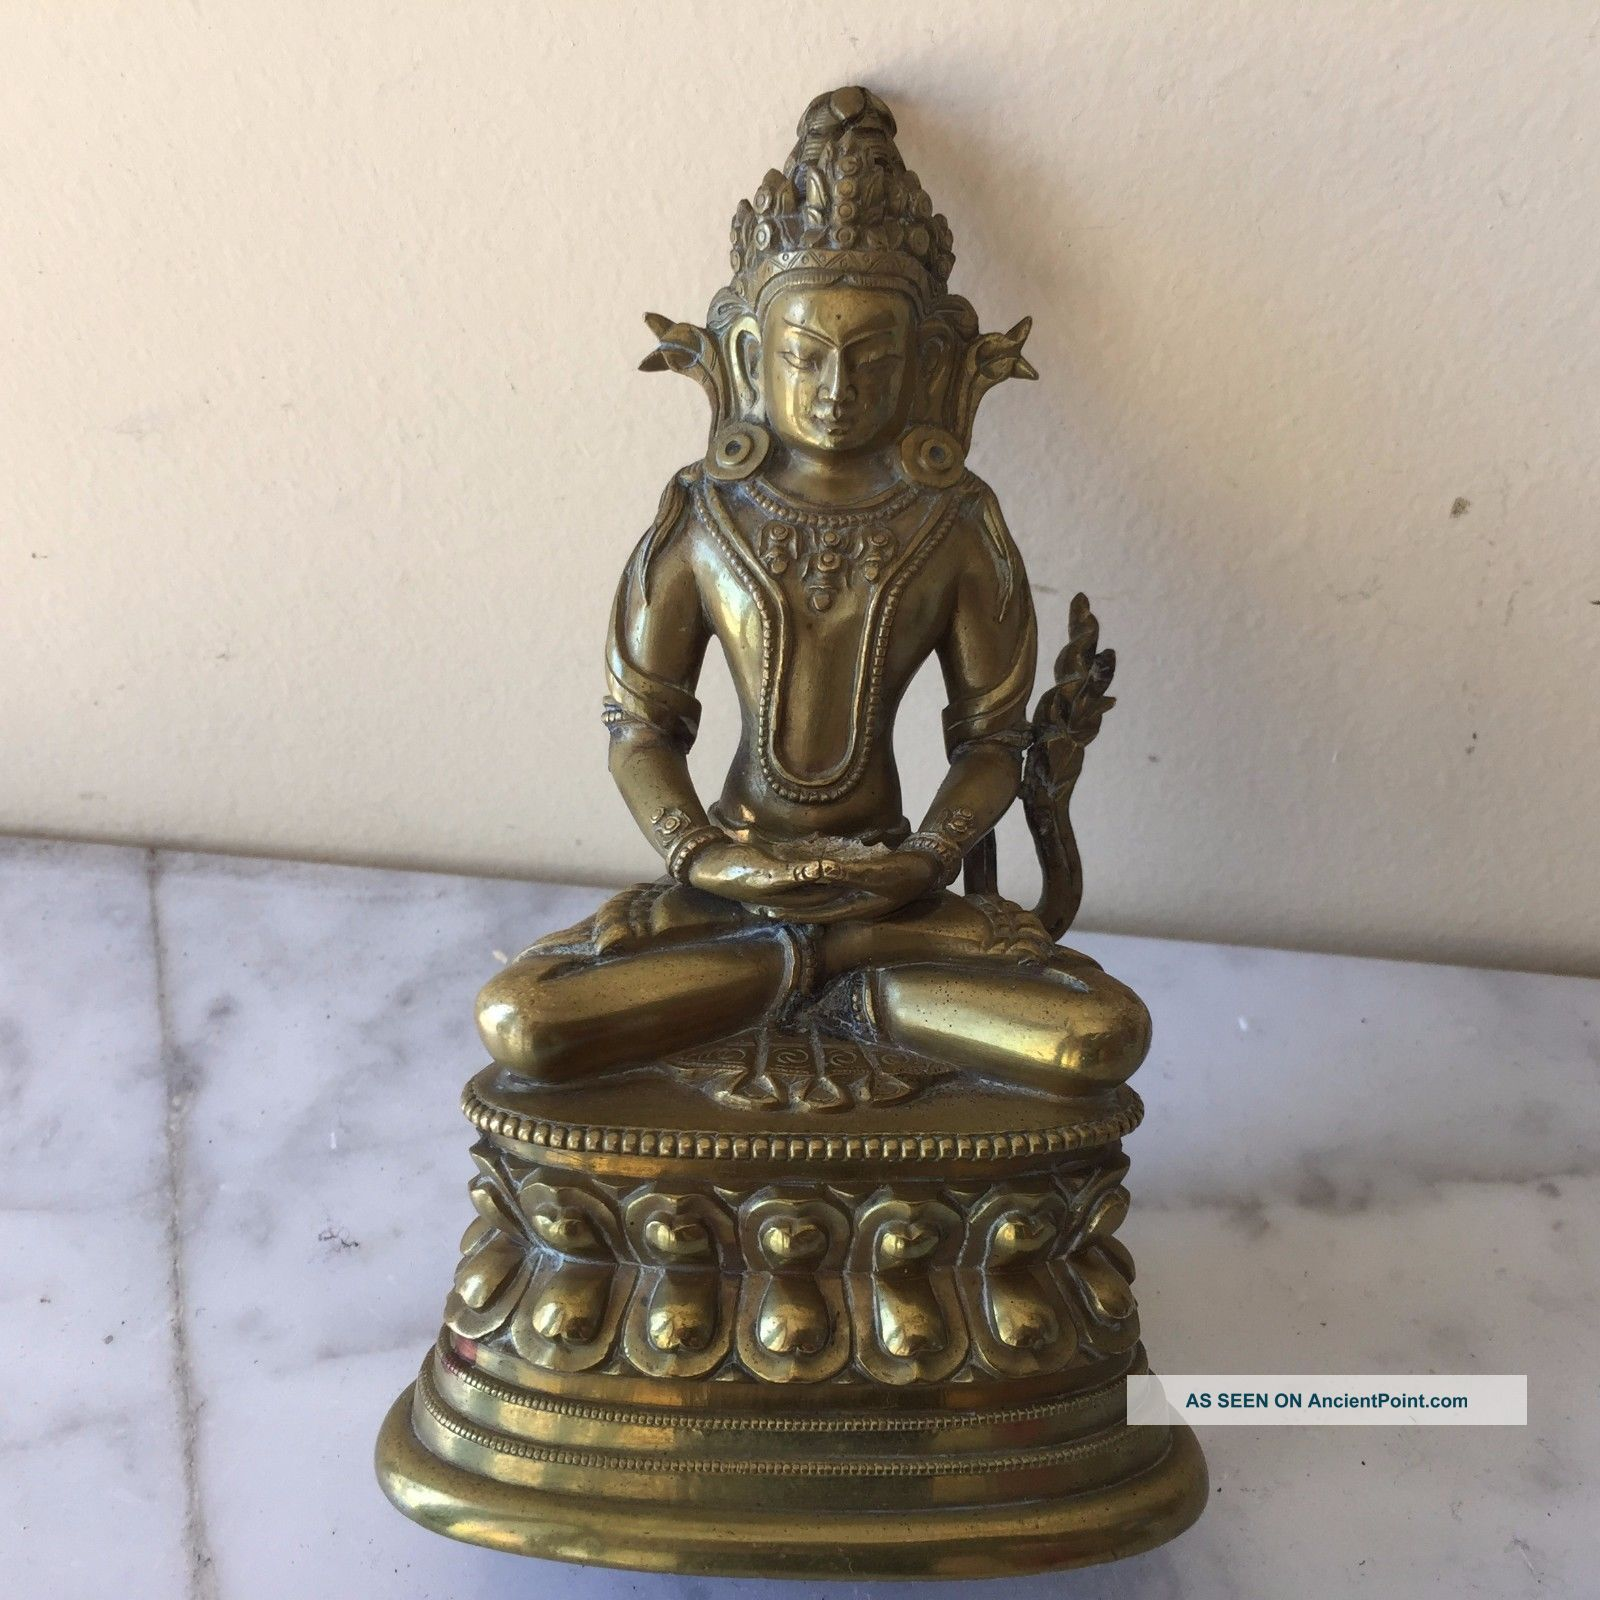 Antique Chinese Bronze Buddha Statue Figurine Figurine See more Antique Bronze Buddha Statue photo